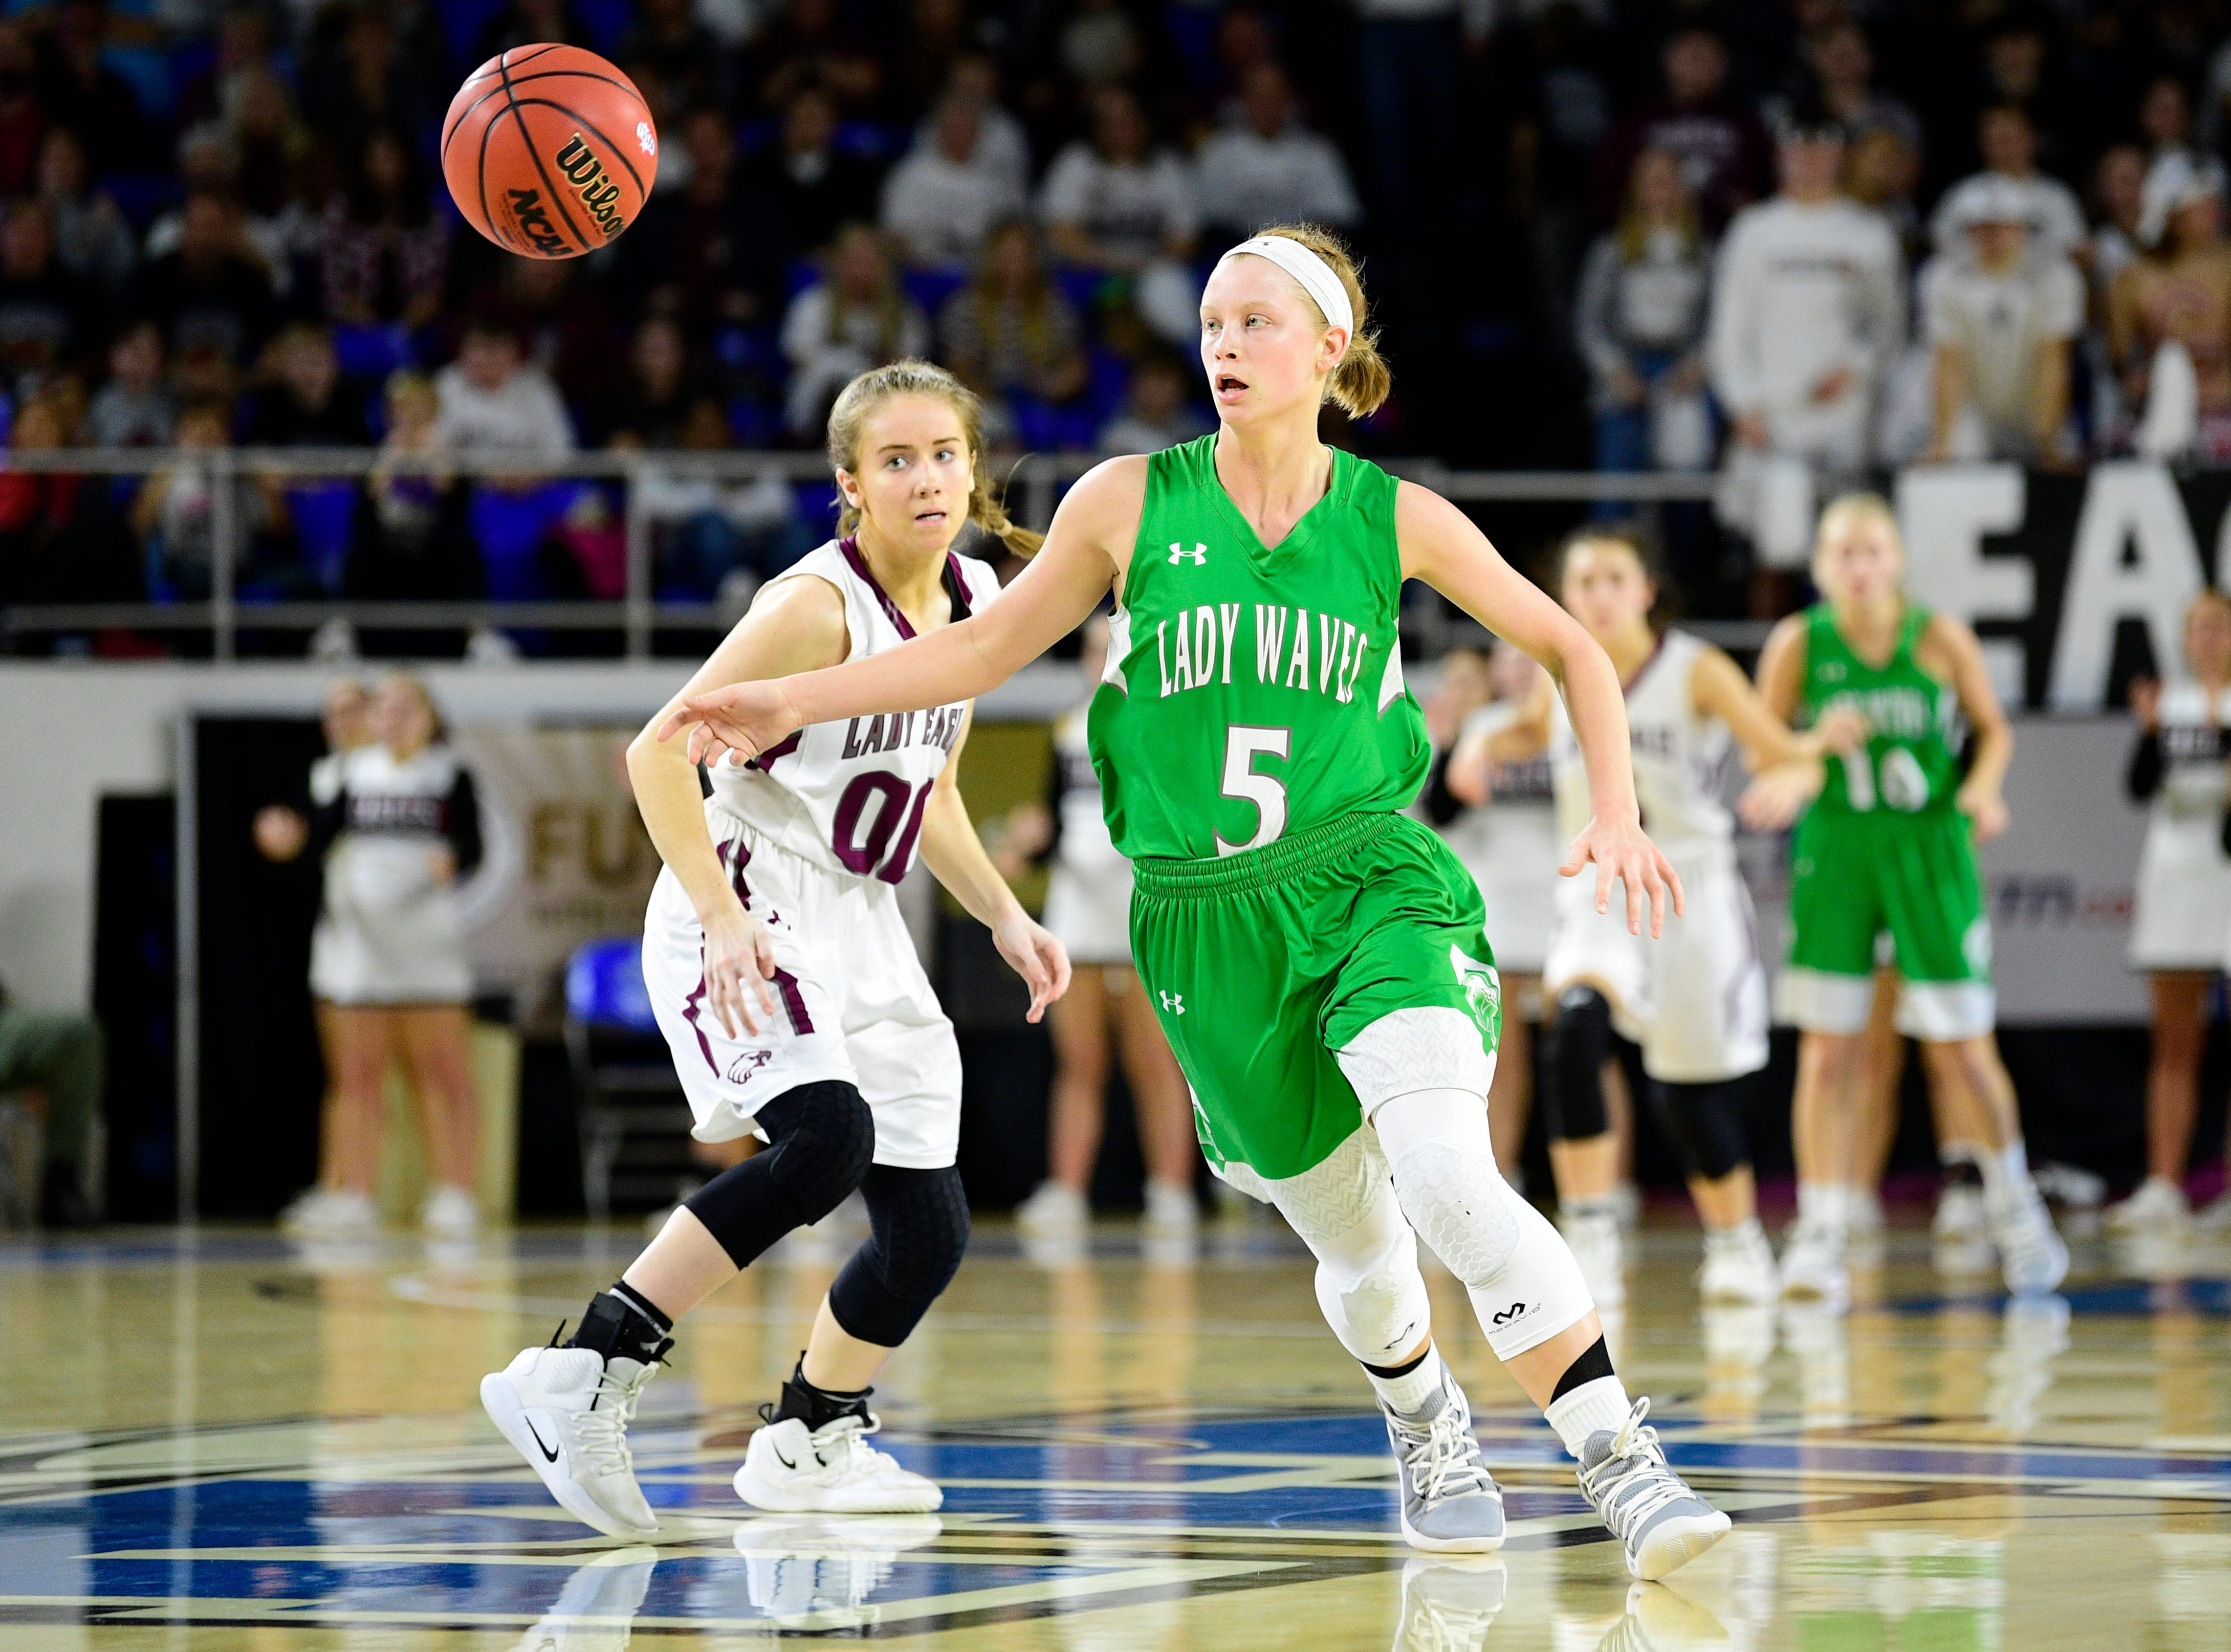 Midway's Paige Bacon (5) and Eagleville's Haylee Ferguson (00) chase the ball during a game between Eagleville and Midway at the TSSAA girls state tournament at the Murphy Center in Murfreesboro, Tennessee on Thursday, March 7, 2019.